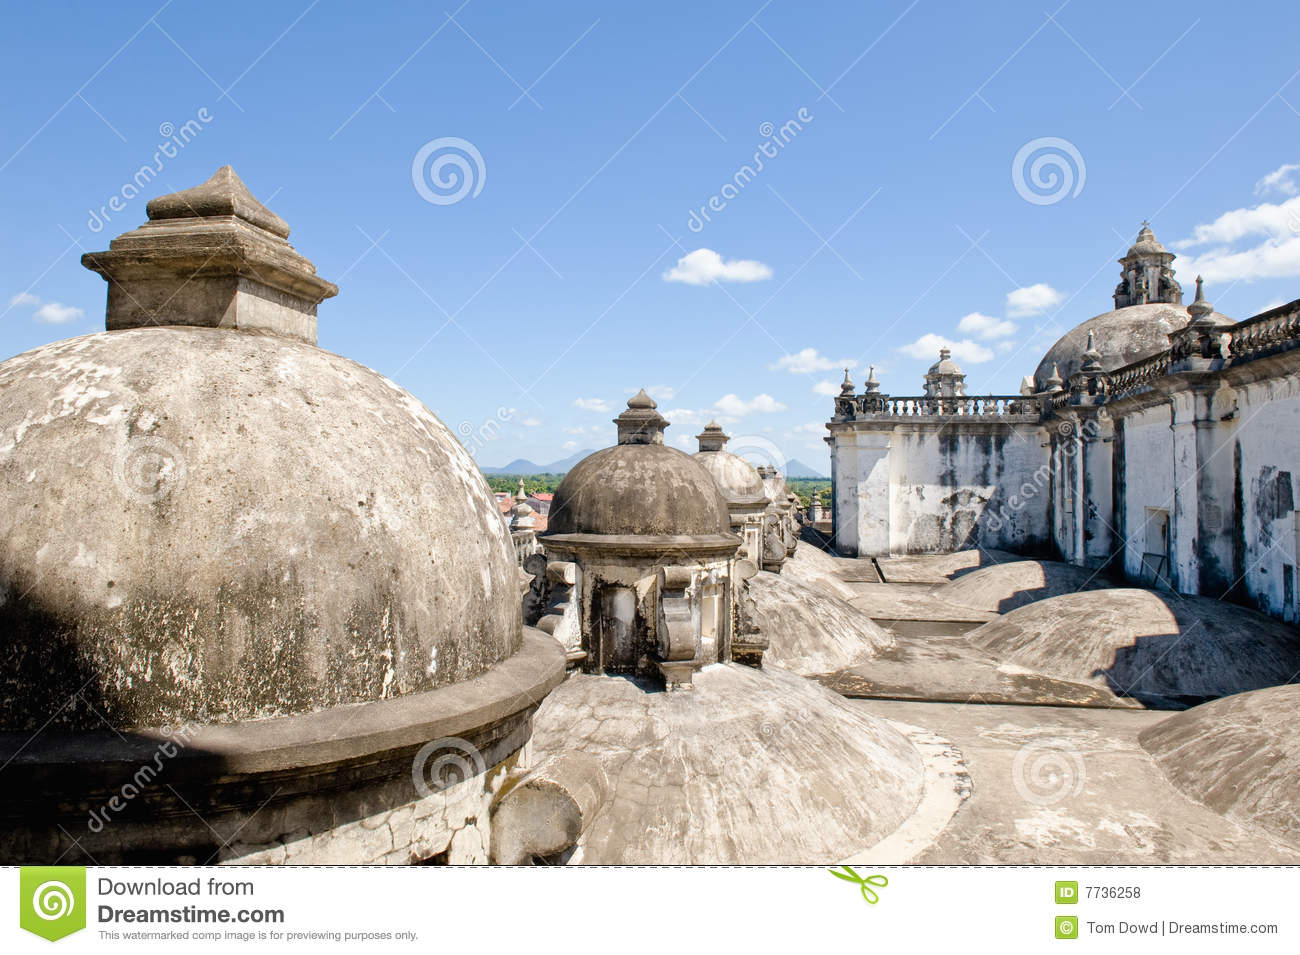 Domes on cathedral roof